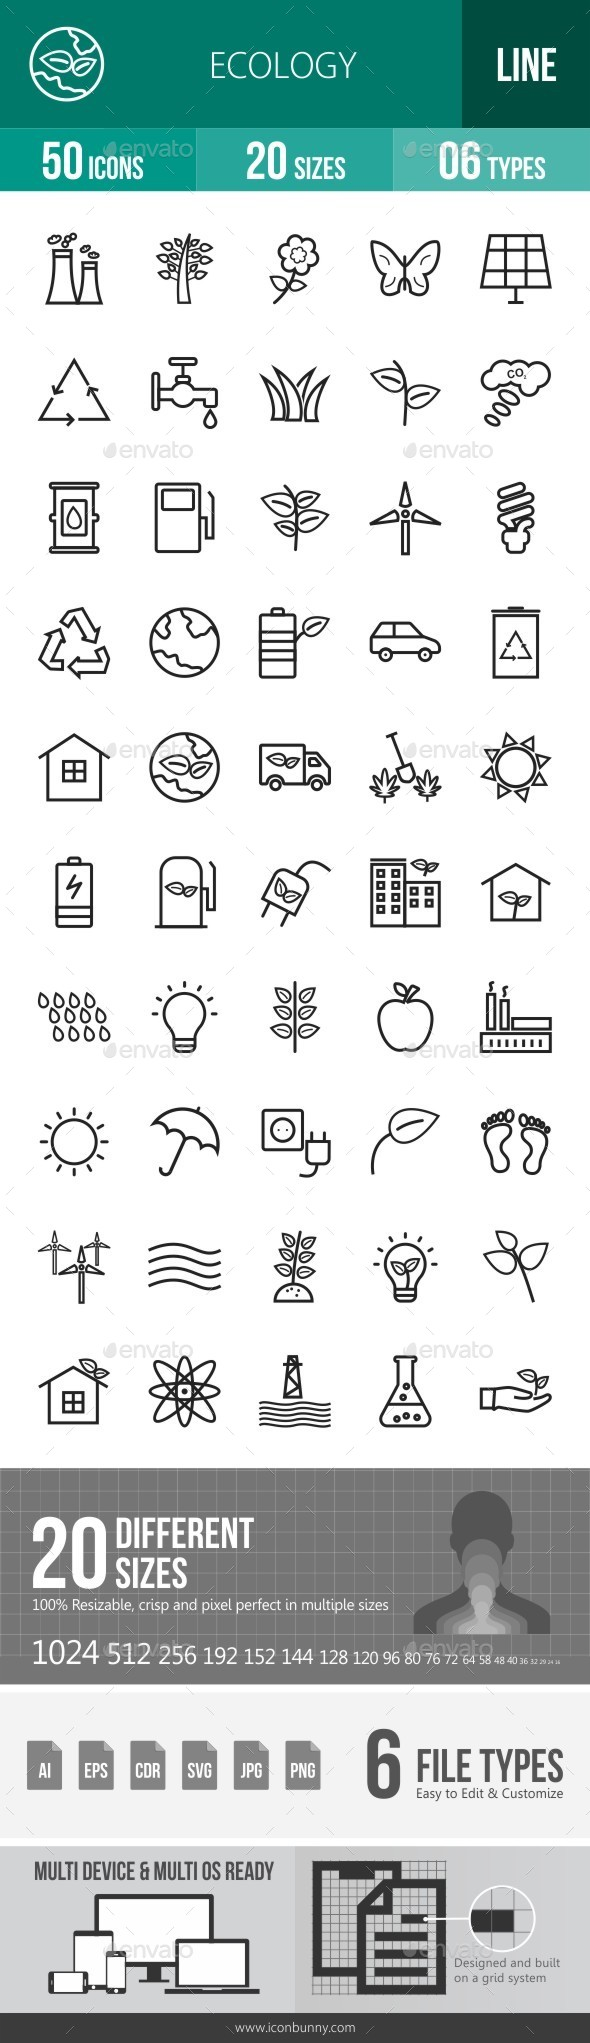 Ecology Line Icons - Icons